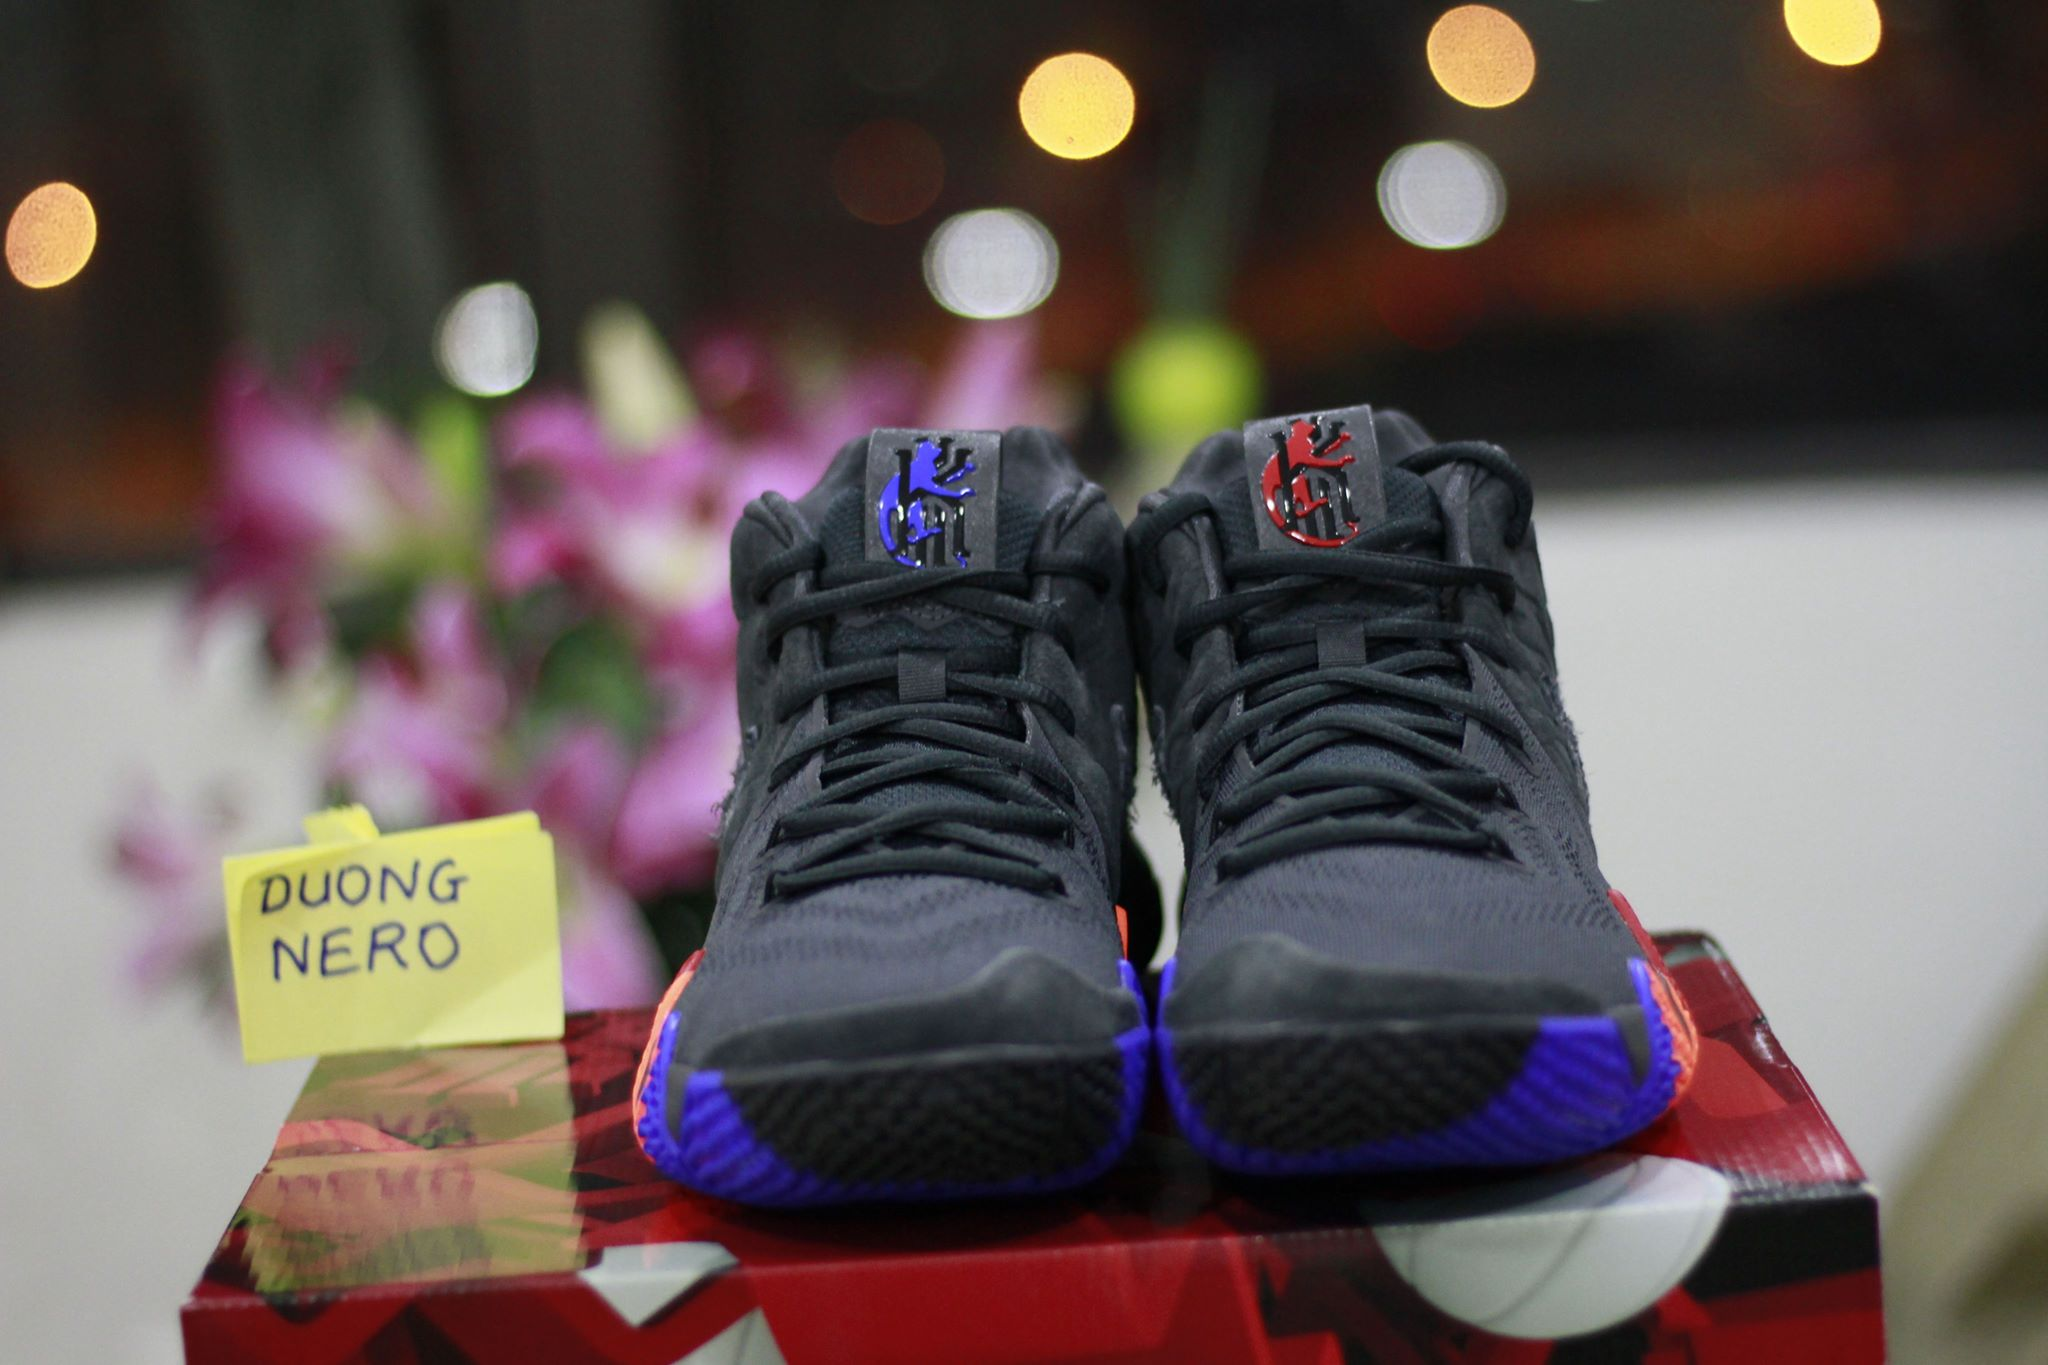 kyrie4 year of monkey